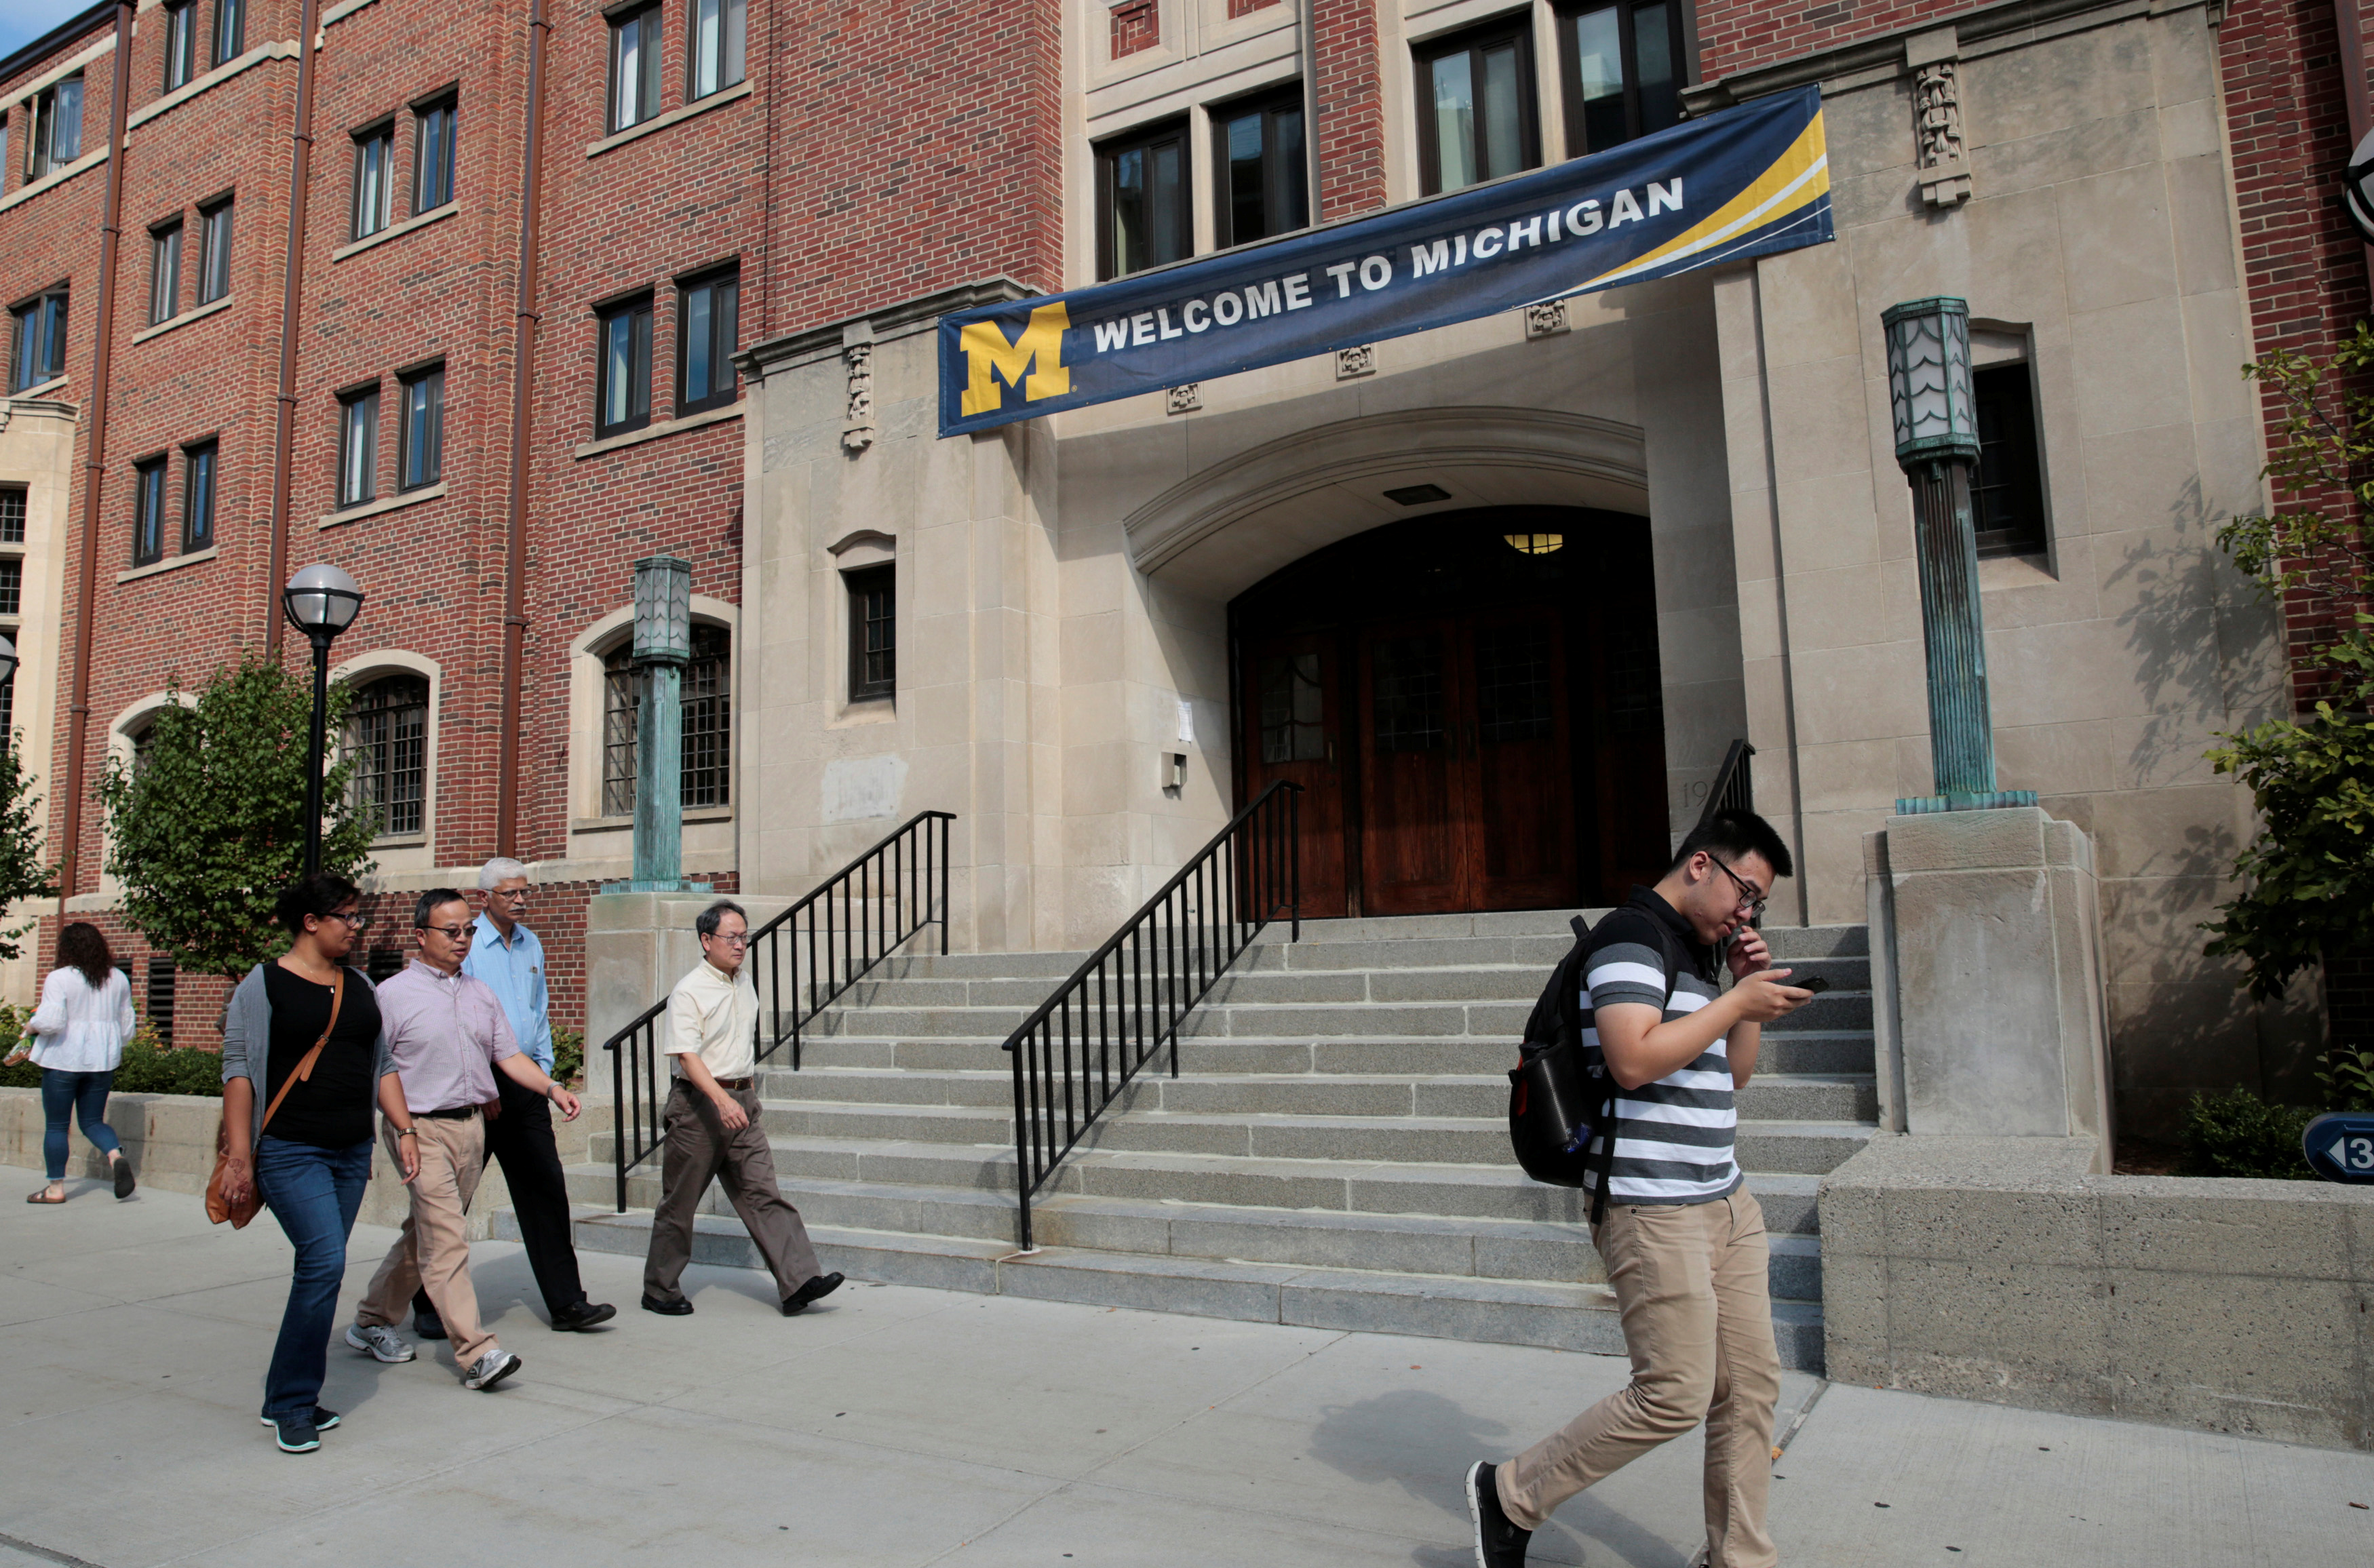 """A """"Welcome"""" banner is seen on a University of Michigan building in Ann Arbor, Michigan, U.S., September 19, 2018. Picture taken on September 19, 2018. REUTERS/Rebecca Cook"""